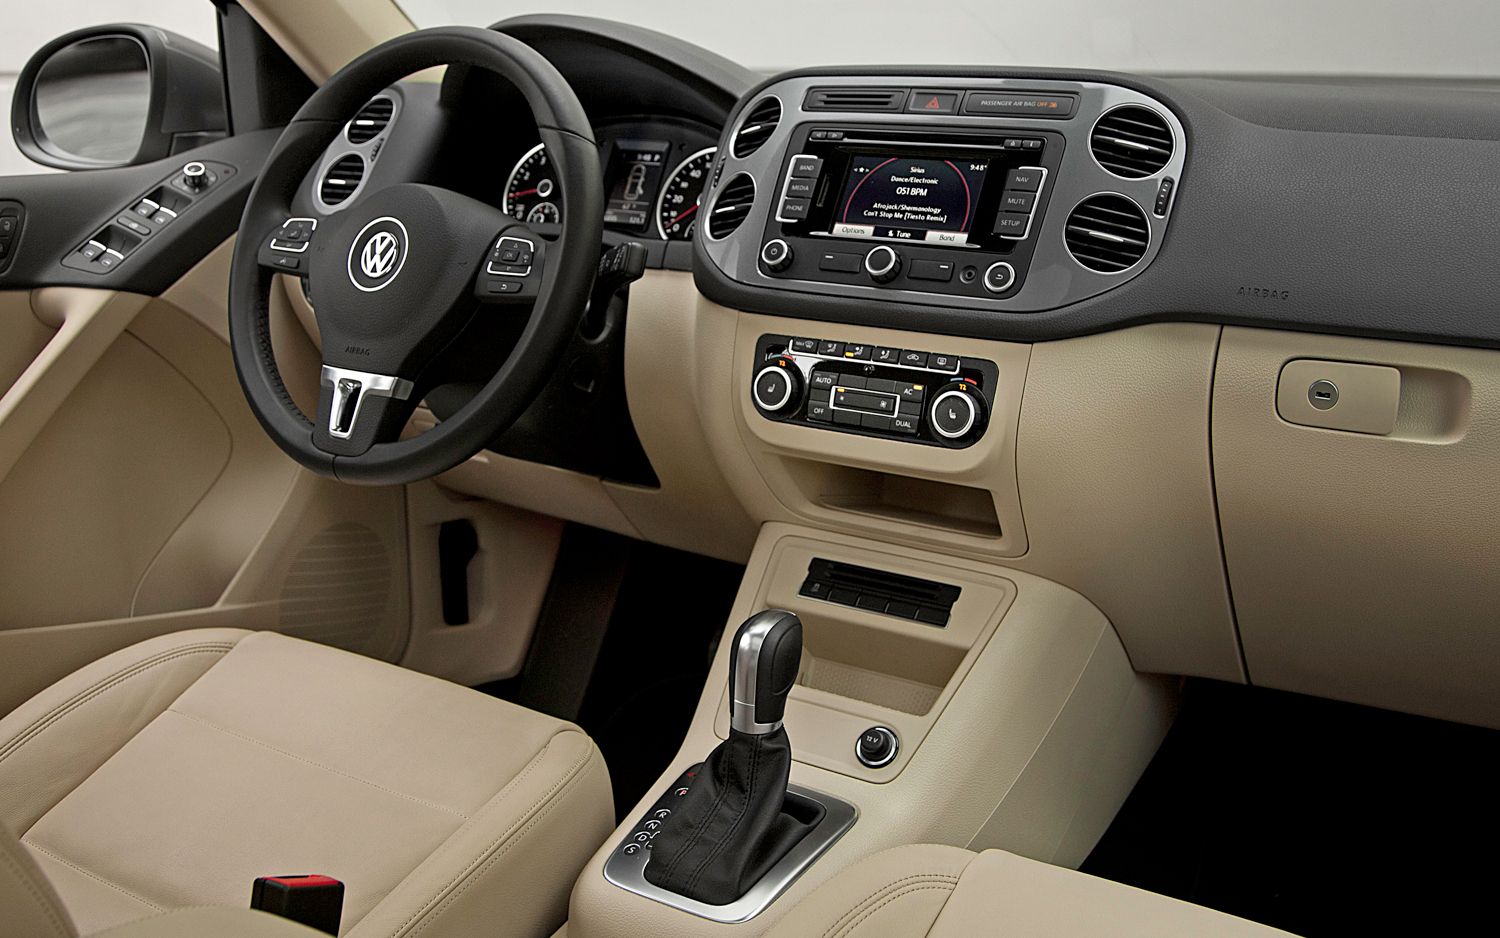 As expected tiguan s rear seats split and fold down to boost cargo space there s 24 cubic feet of space under the hatch about 10 cubic feet less than the